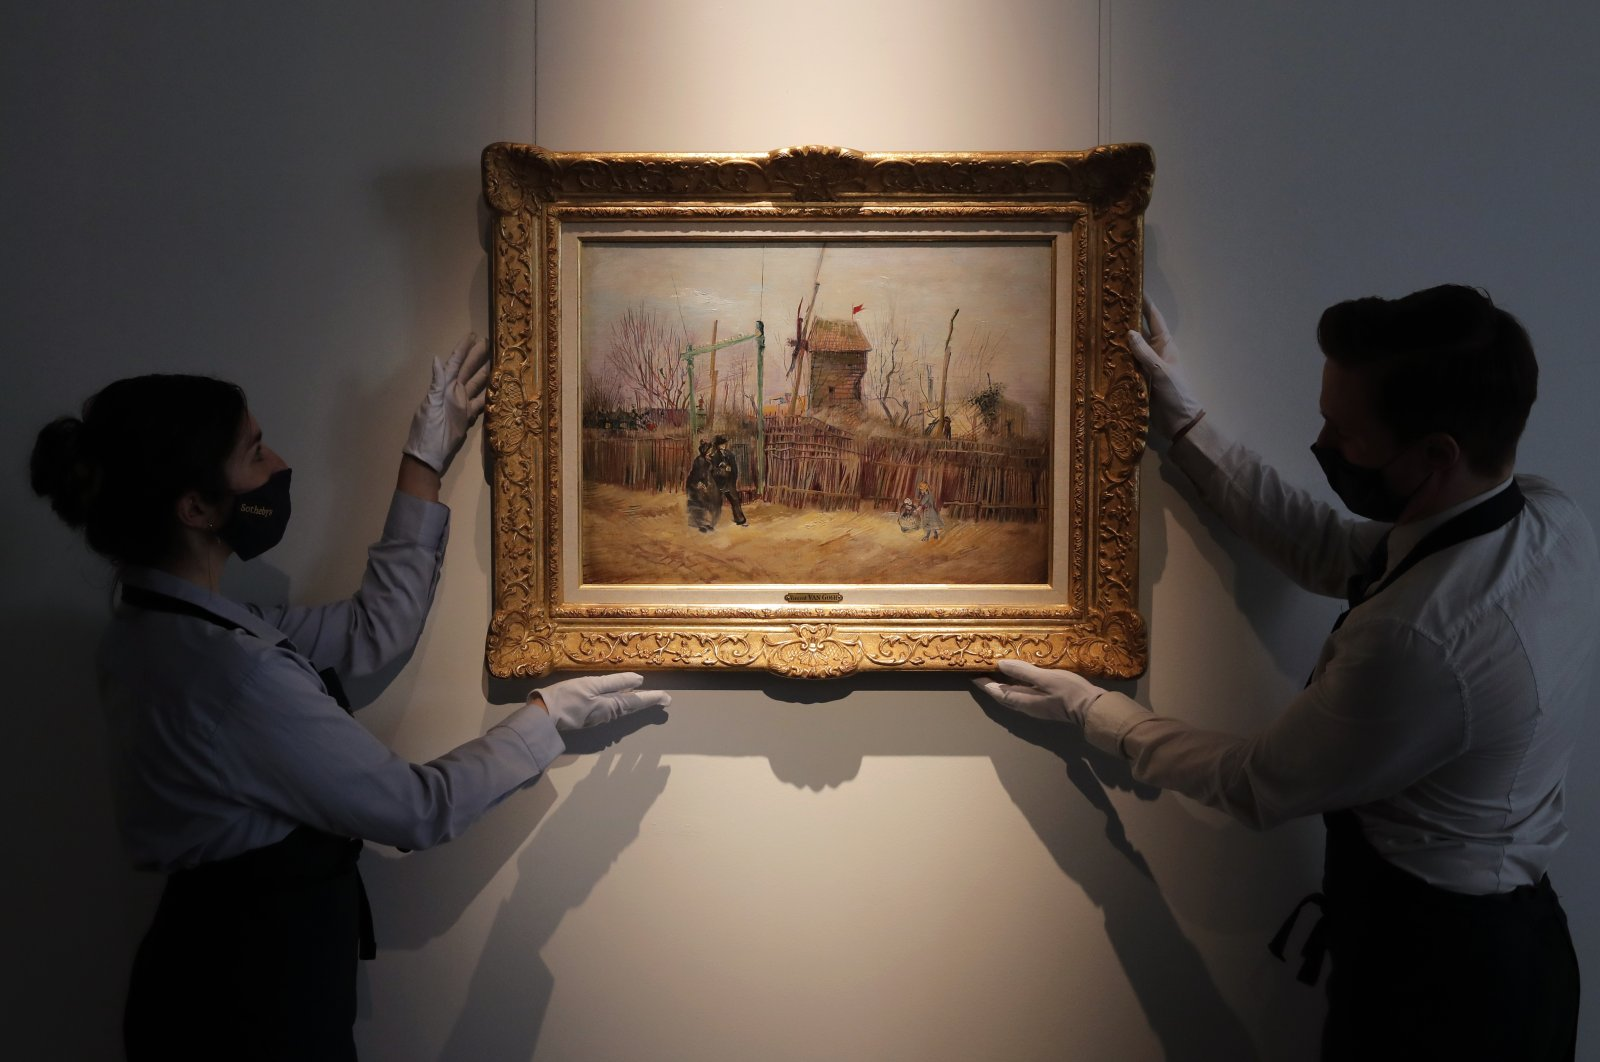 """Sotheby's personnel display the """"Street scene in Montmartre"""" painting by Dutch master Vincent Van Gogh at Sotheby's auction house in Paris, France, Feb. 25, 2021. (AP Photo)"""